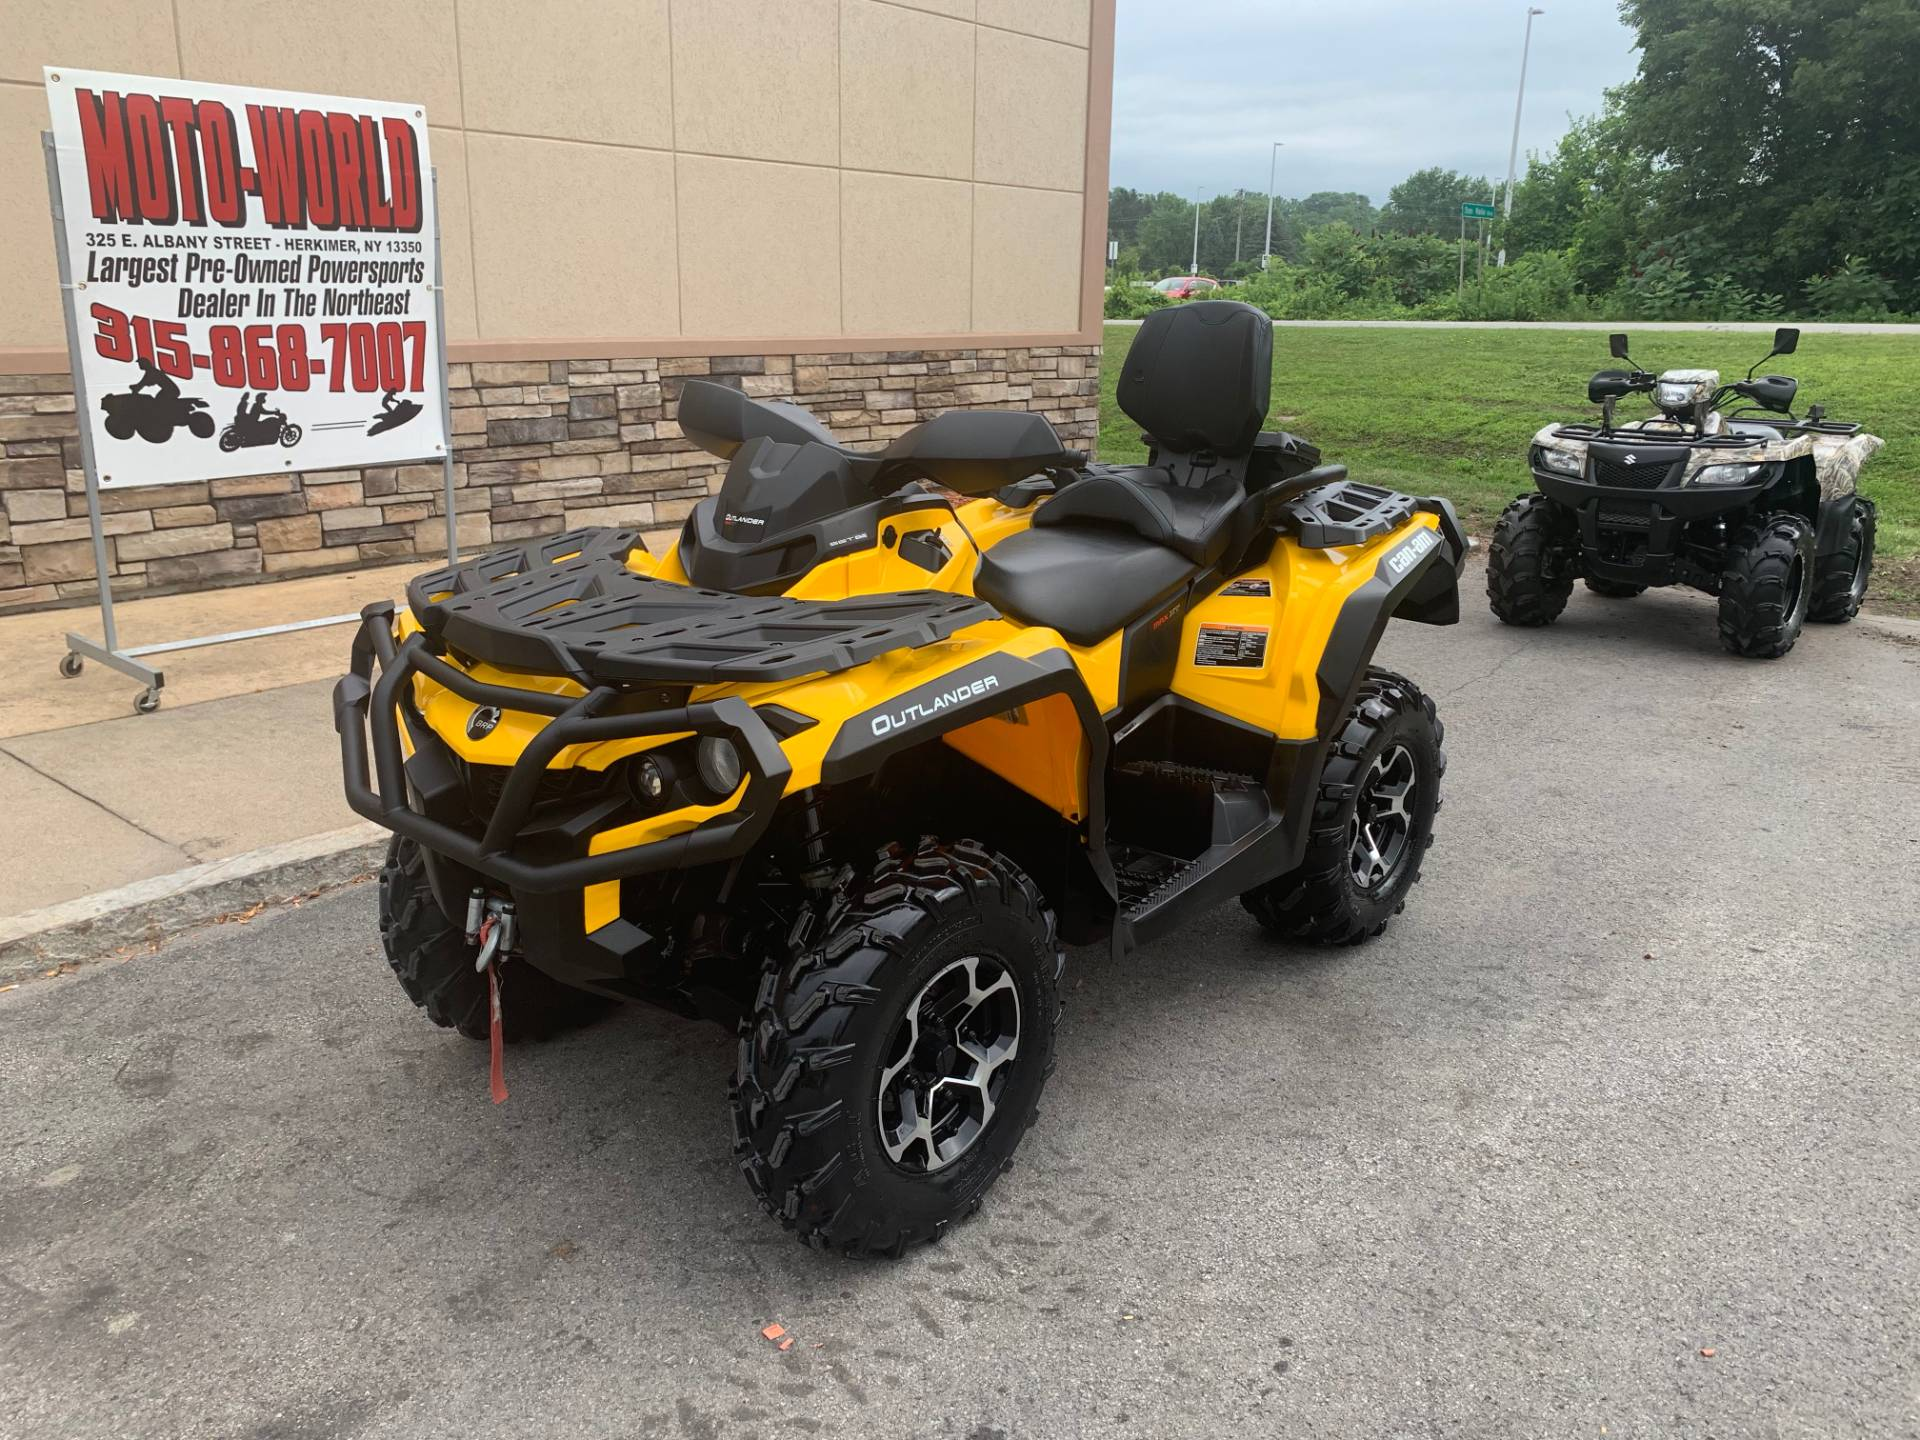 2016 Can-Am Outlander MAX XT 570 in Herkimer, New York - Photo 9